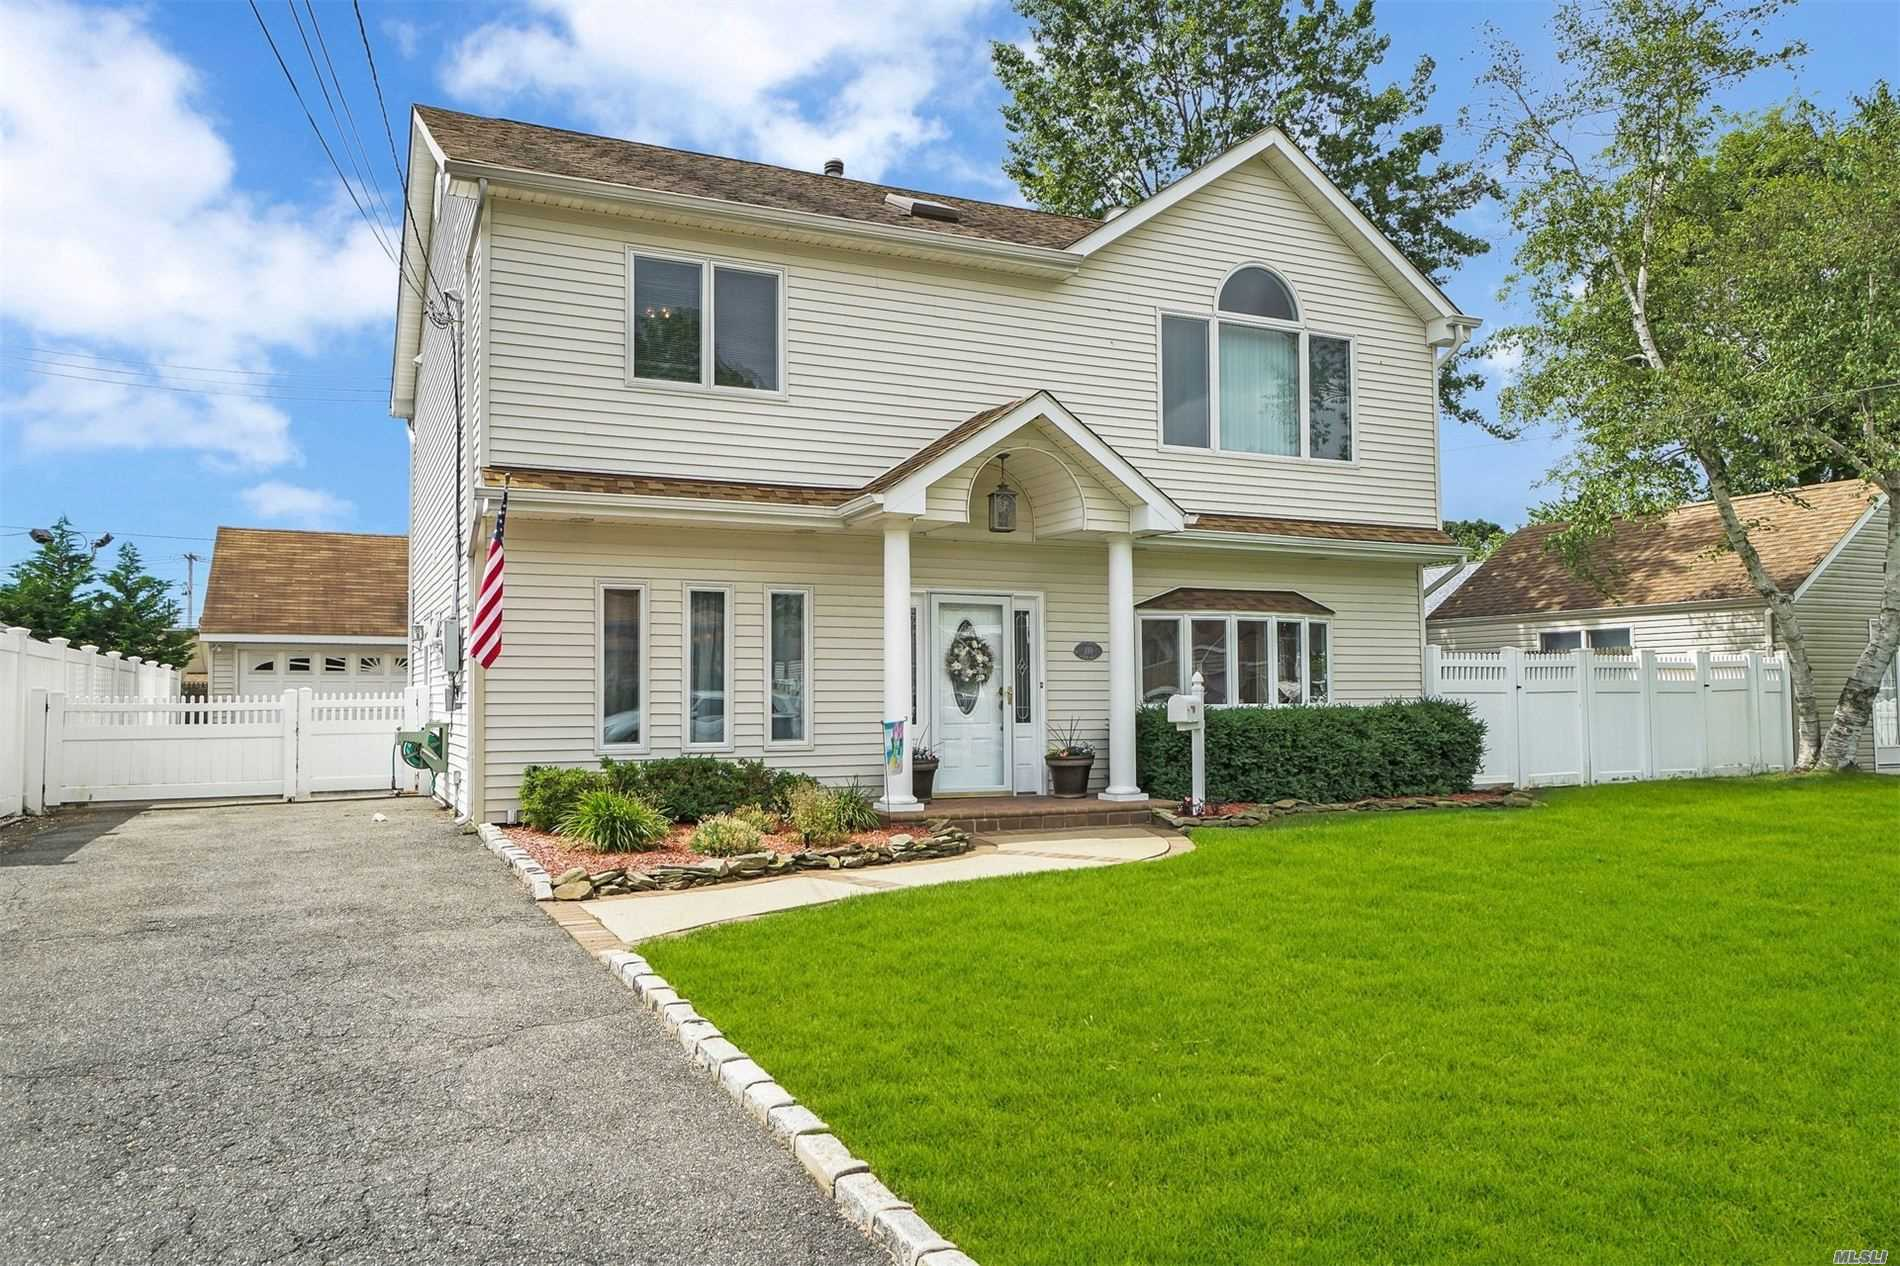 110 Beverly Ave - Massapequa Park, New York